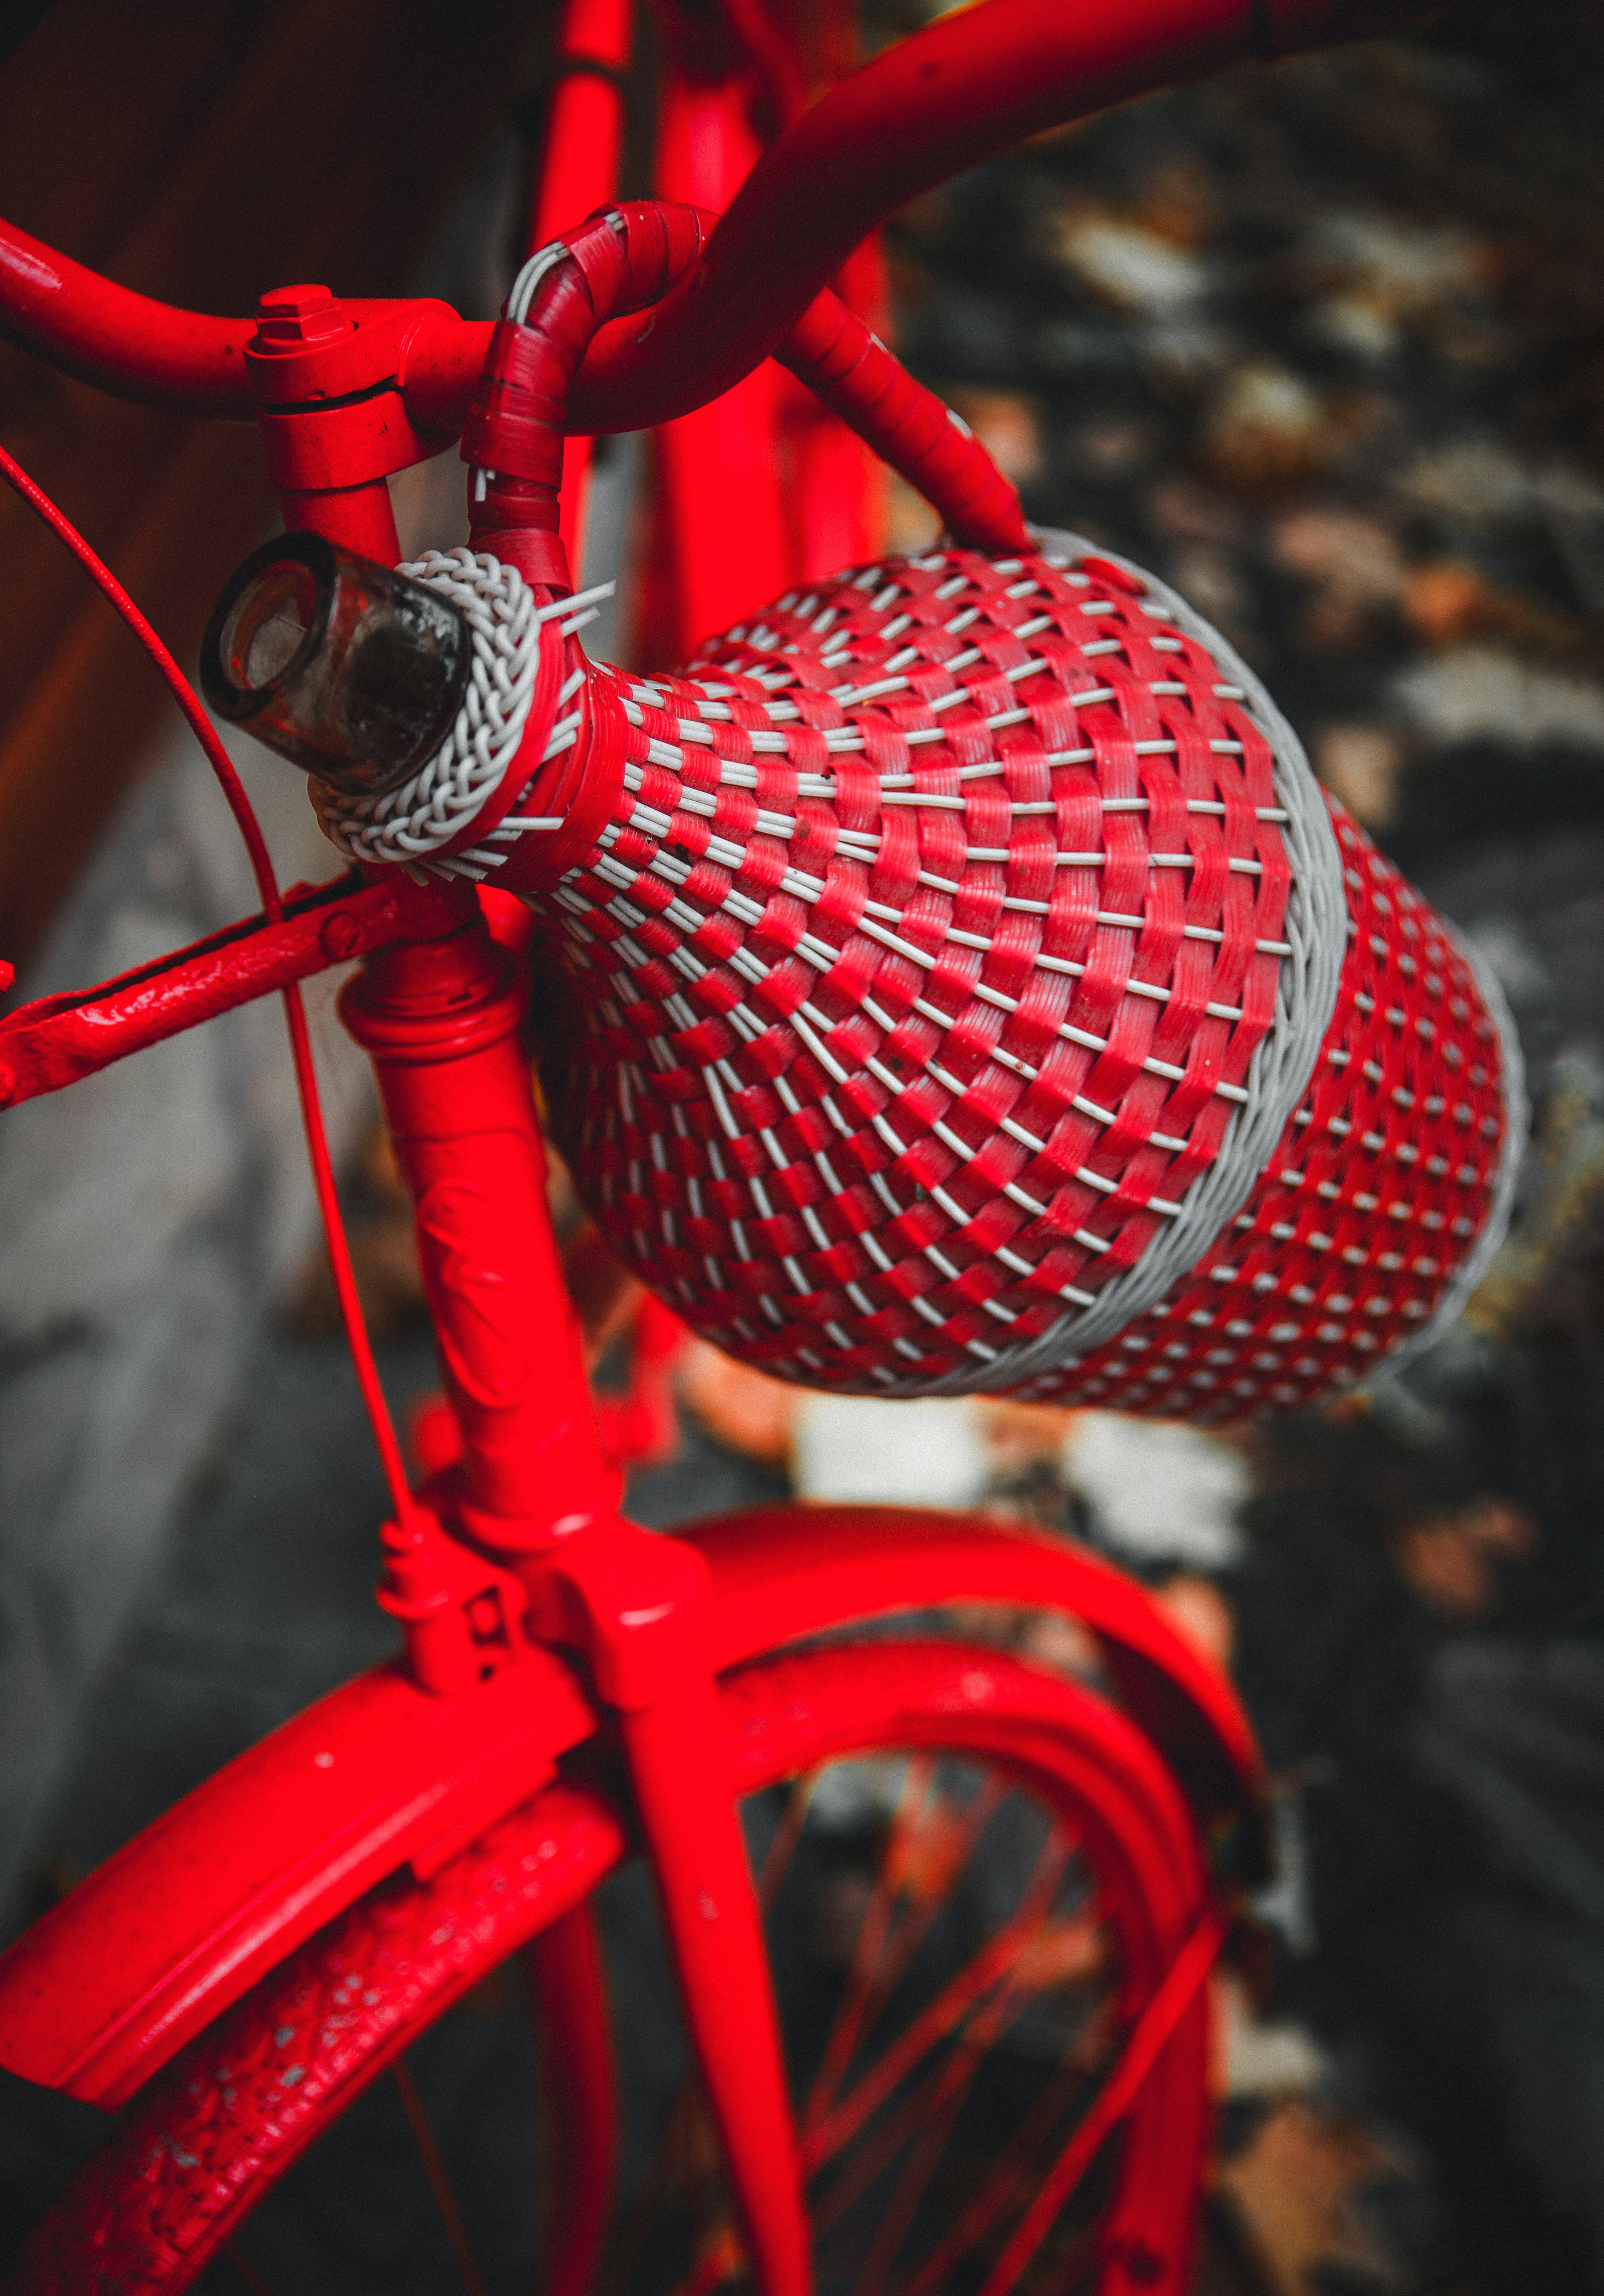 Free stock photo of red, bicycle, color